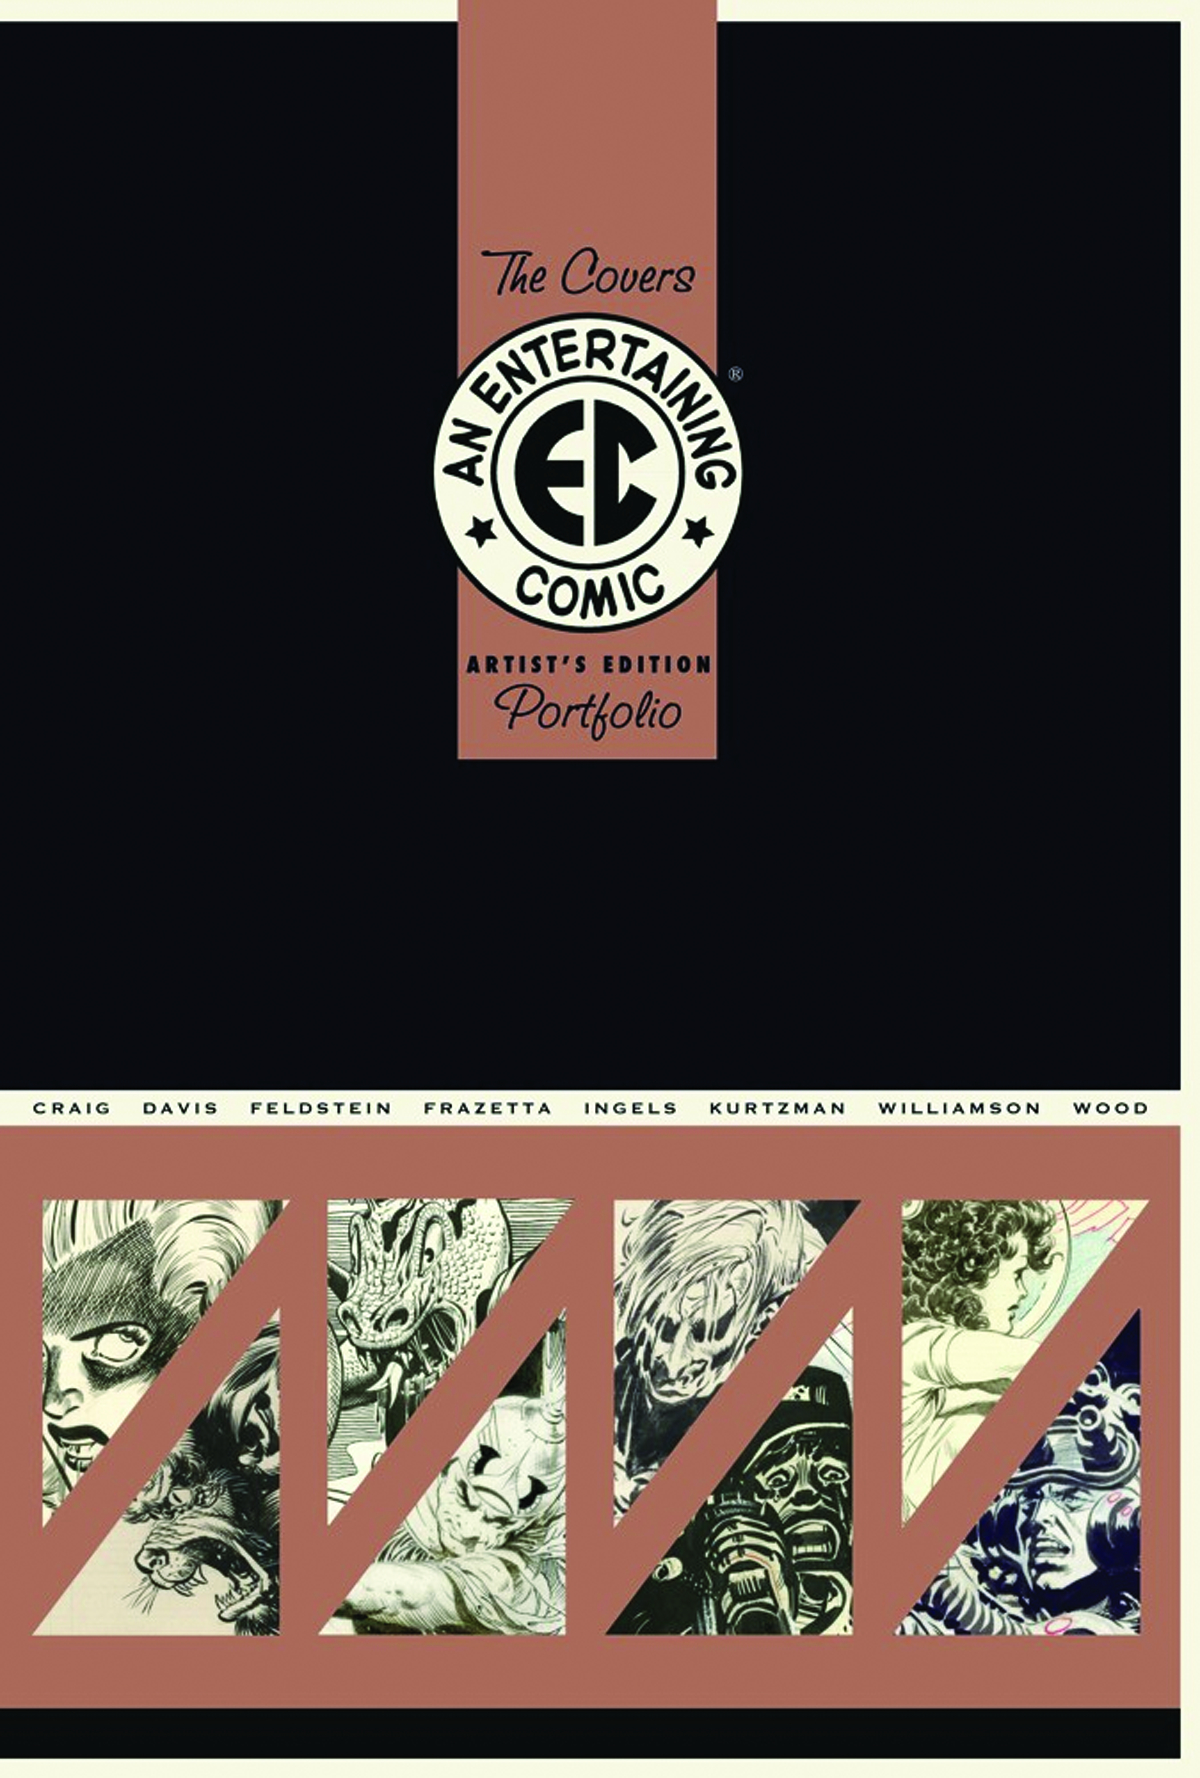 BEST OF EC COVERS ARTIST ED PORTFOLIO  (PP #1103)